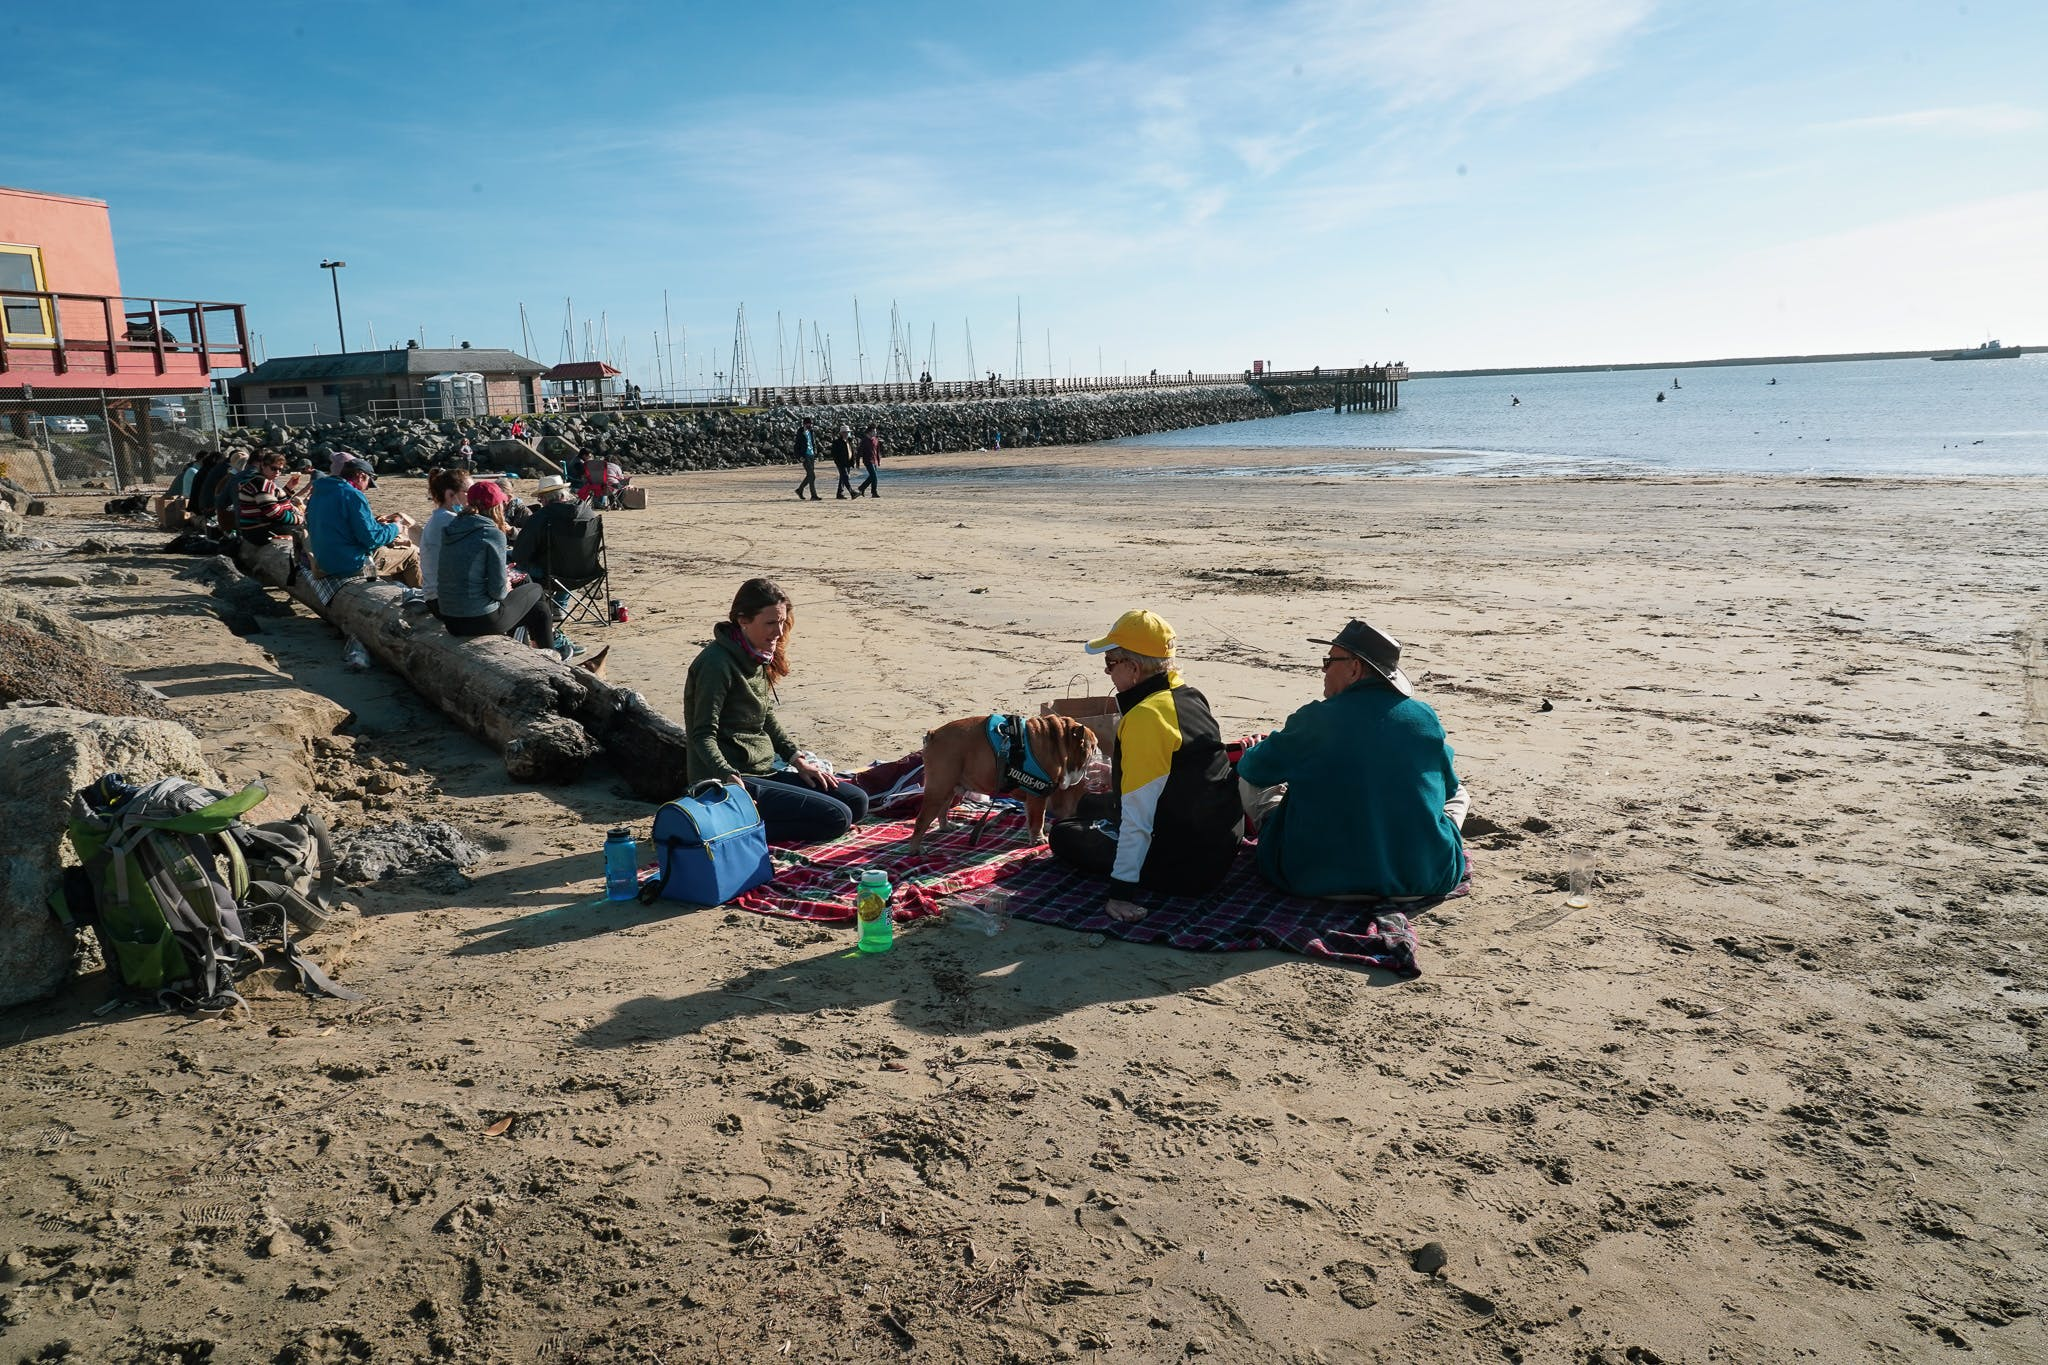 Three people and a dog sitting on a blanket at the beach in front of Barbar